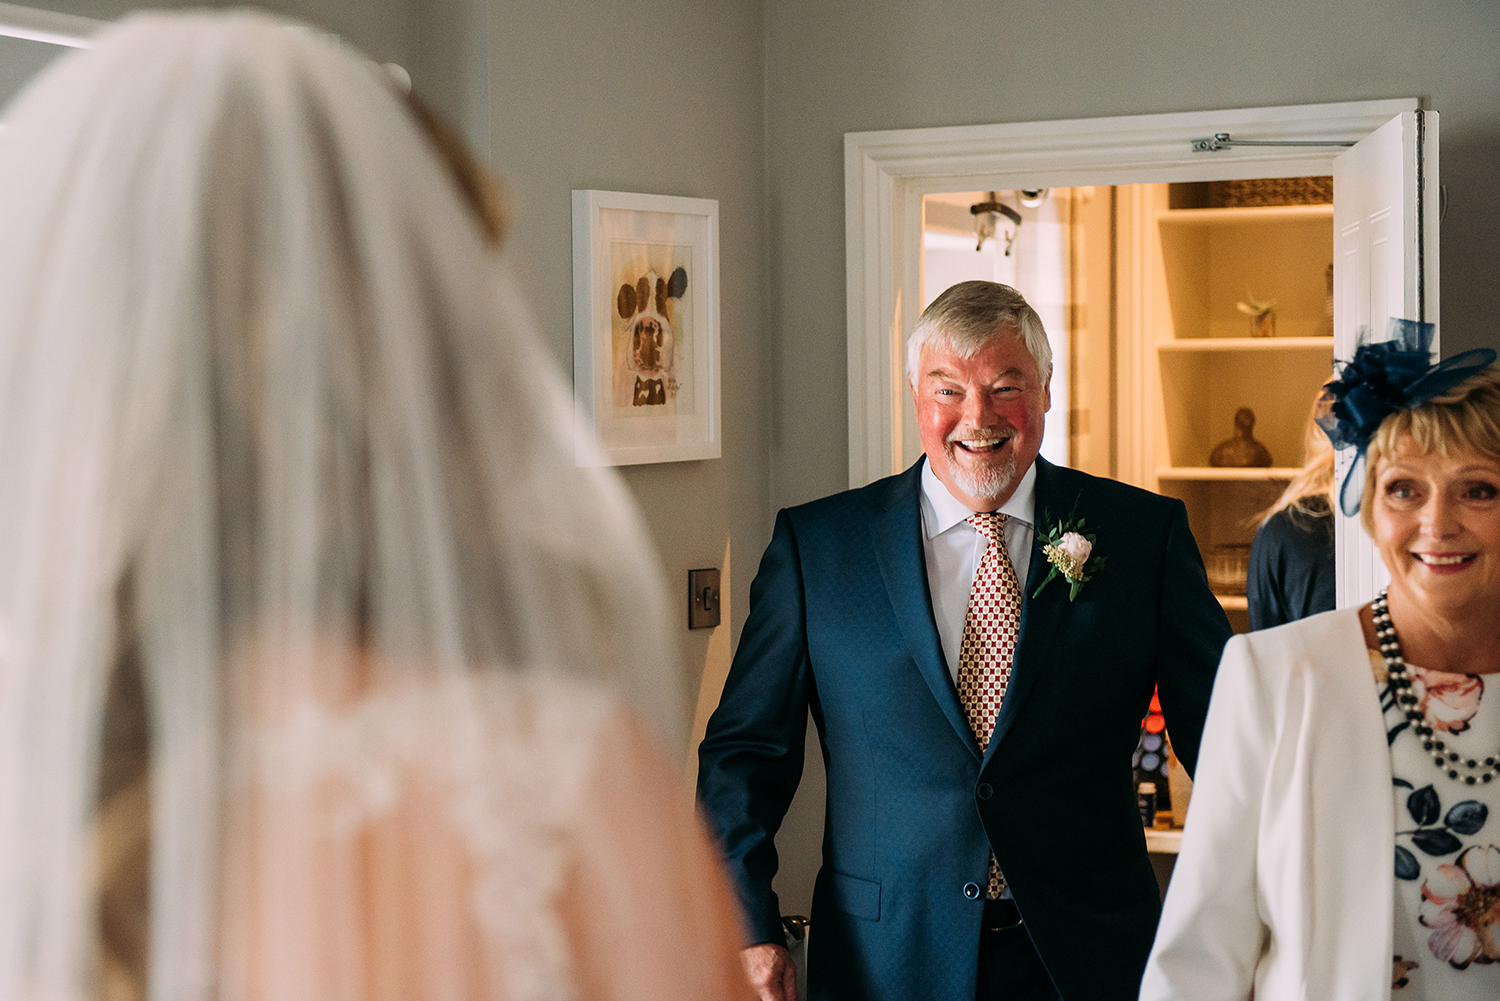 dad first see's the bride in her dress